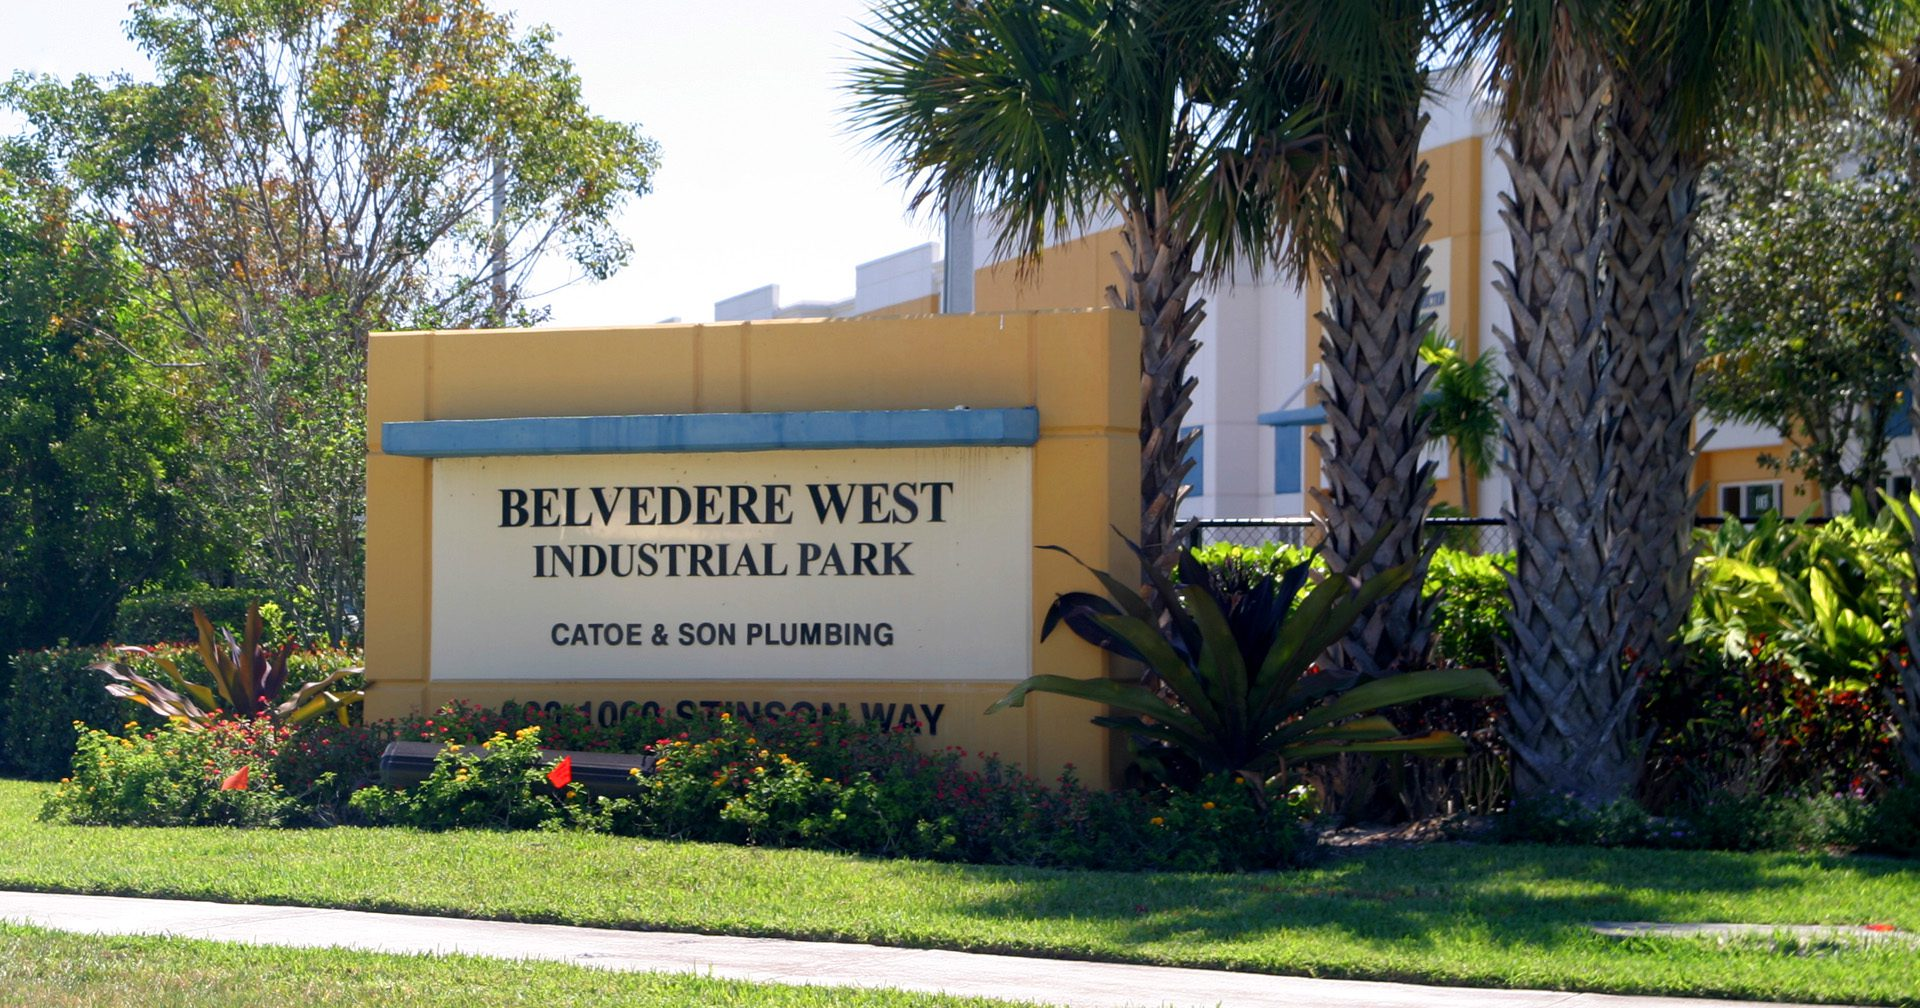 Belvedere West Industrial Park